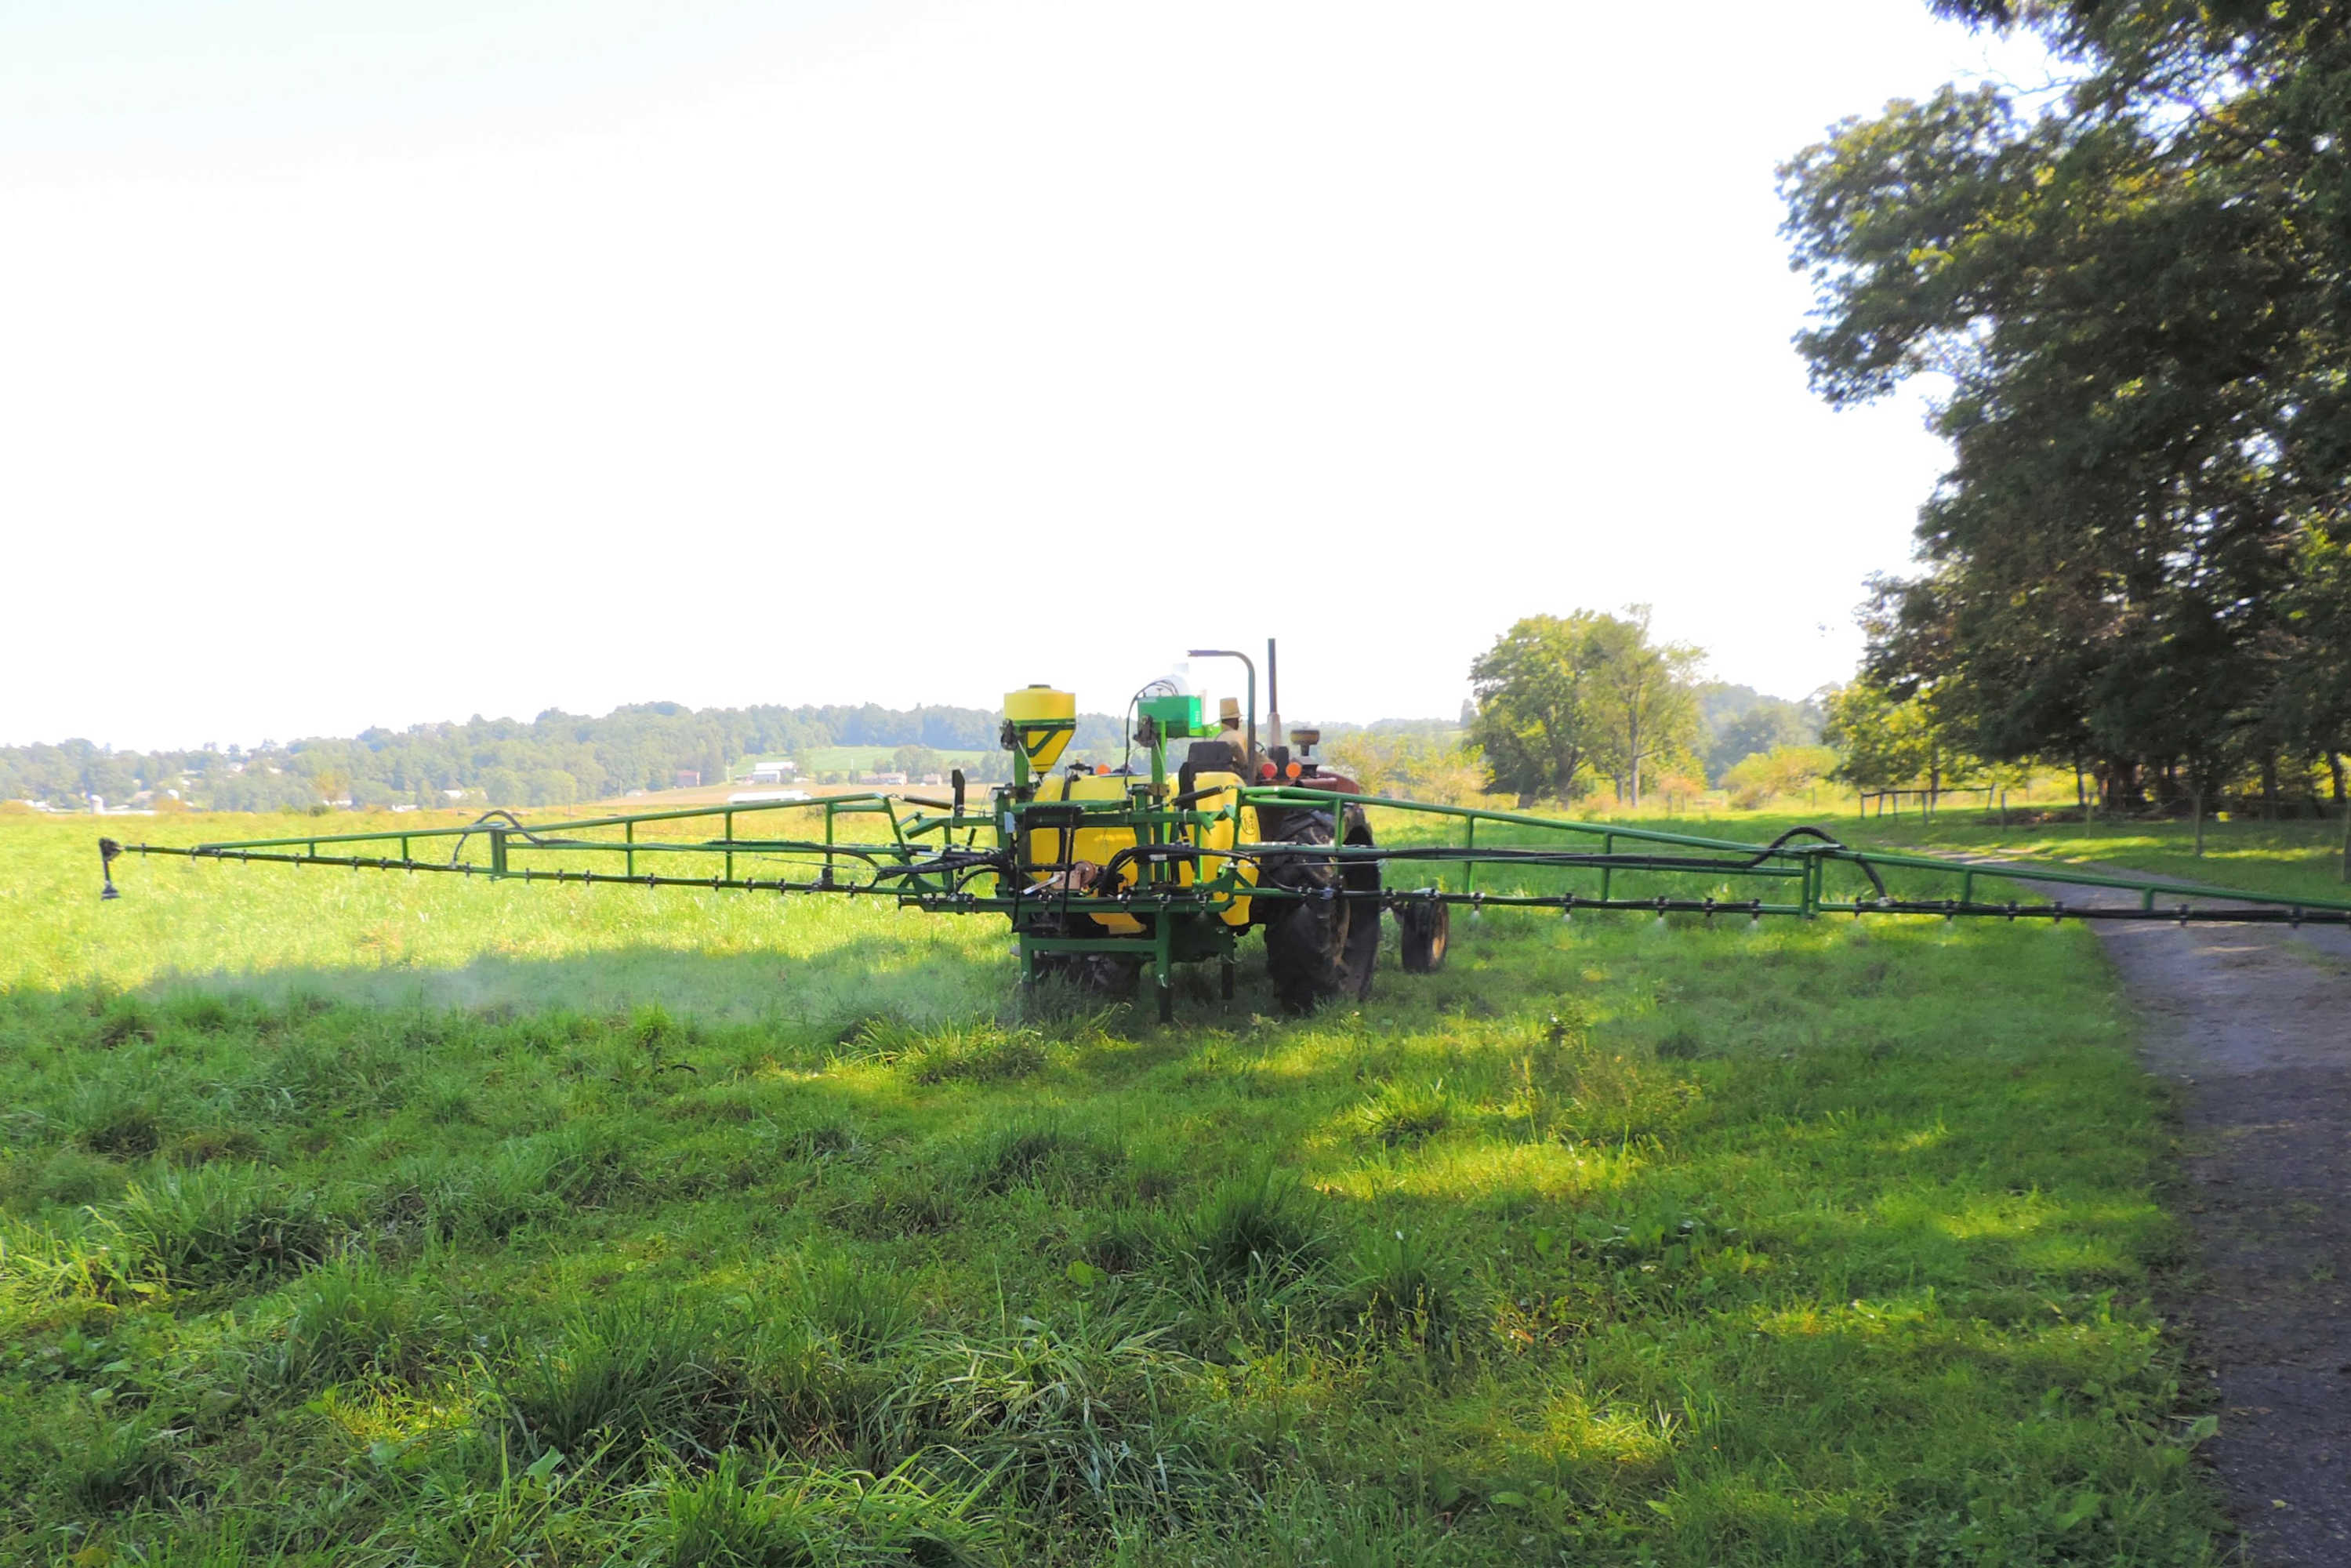 300 gallon 3-point Mounted Sprayer with 45' SpringRide booms